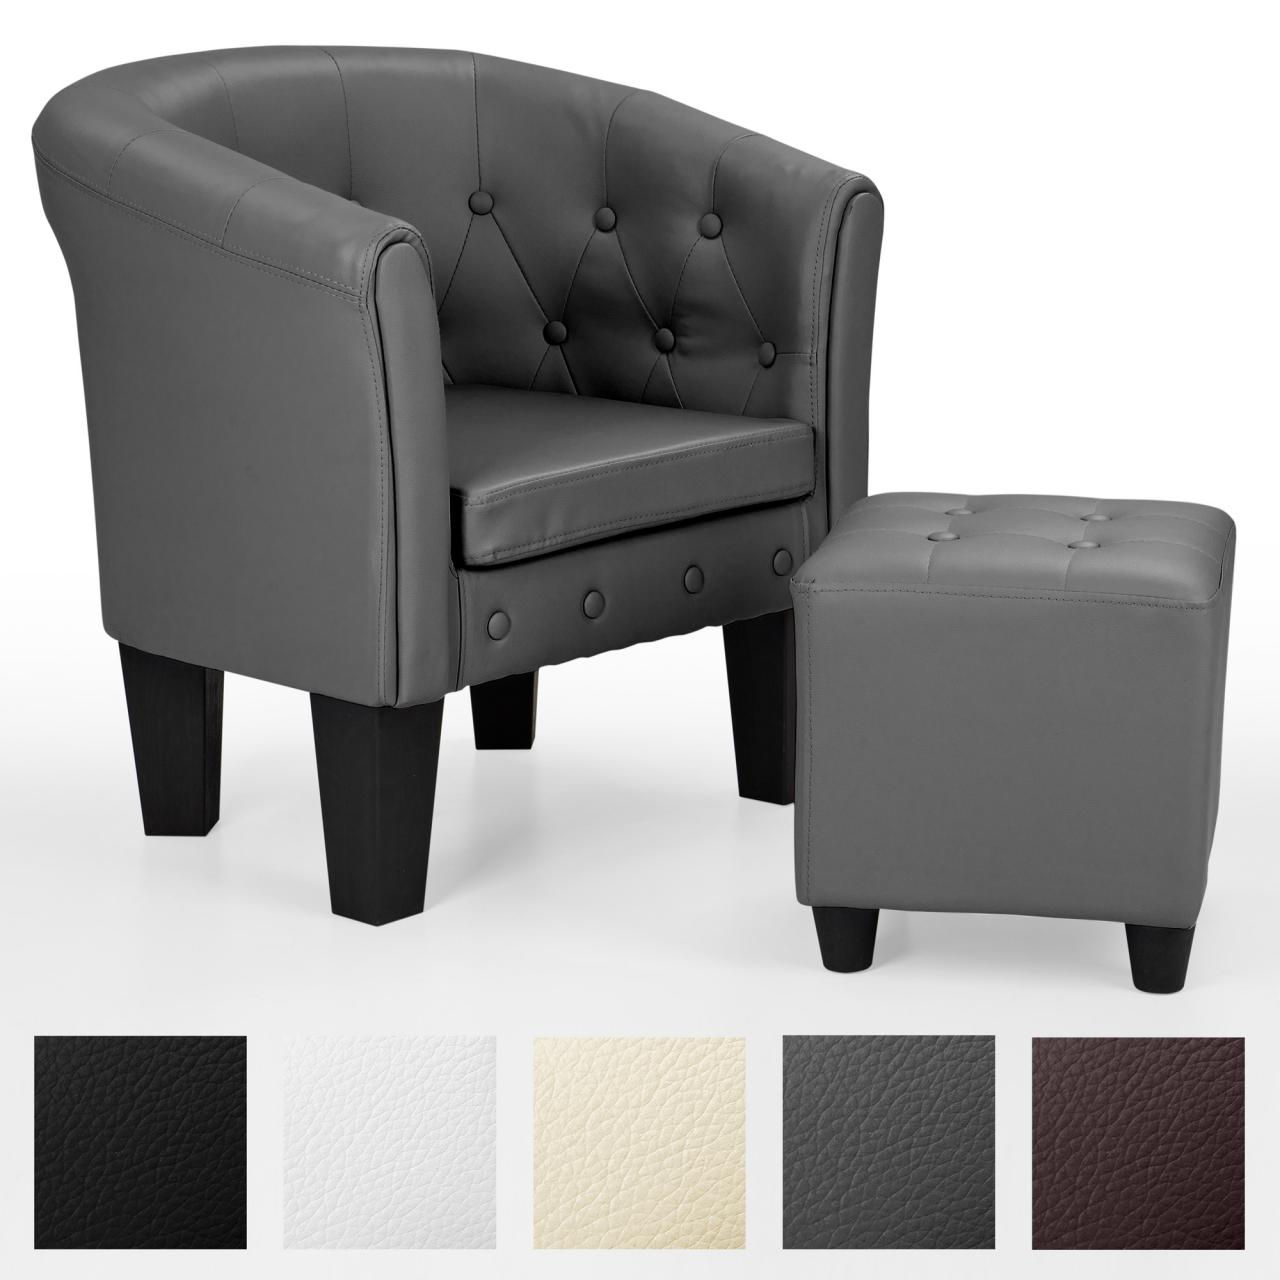 Buro Mobel Chesterfield Sessel Lounge Couch Sofa Büro Möbel Clubsessel Bar